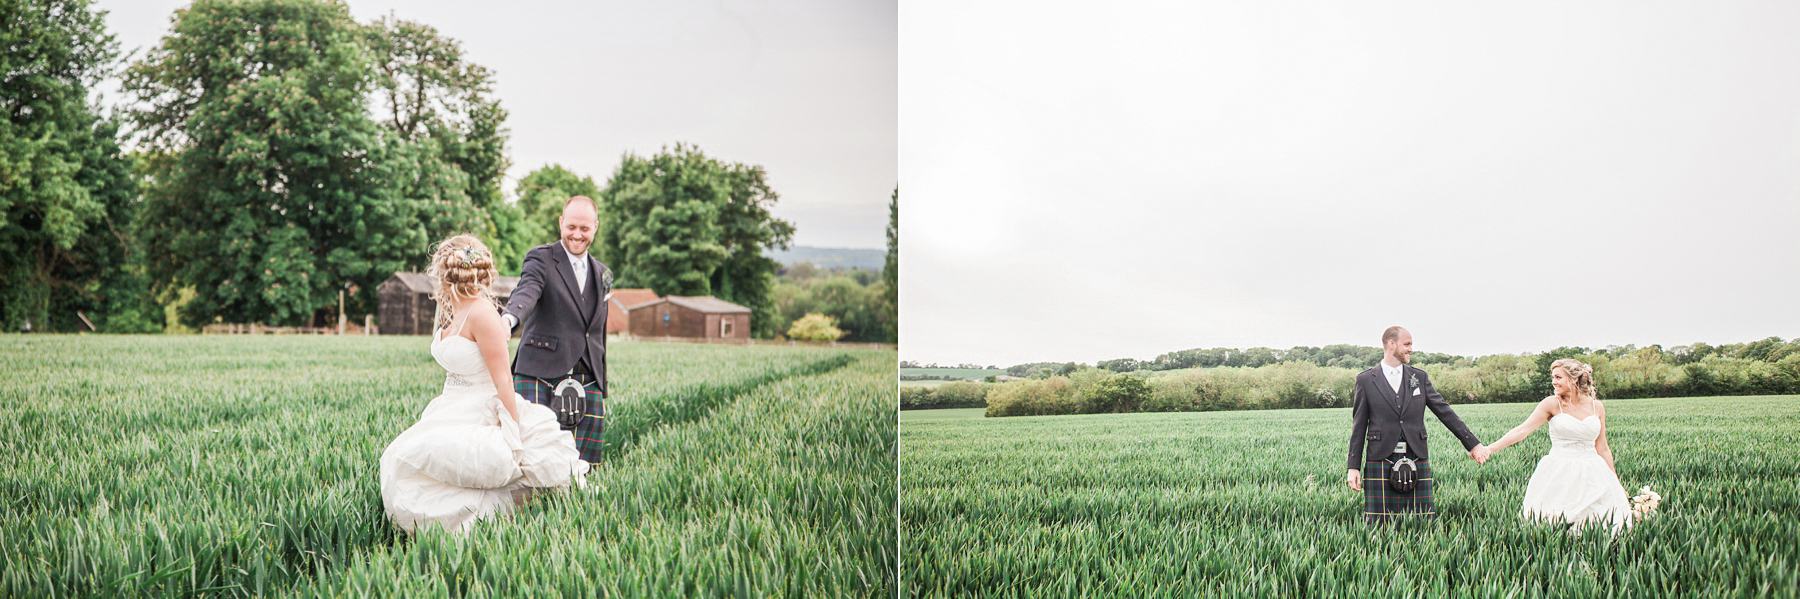 Hampshire Wedding Photography Lilybean Photography Vintage Wedding Fine Art Bonhams Barn27